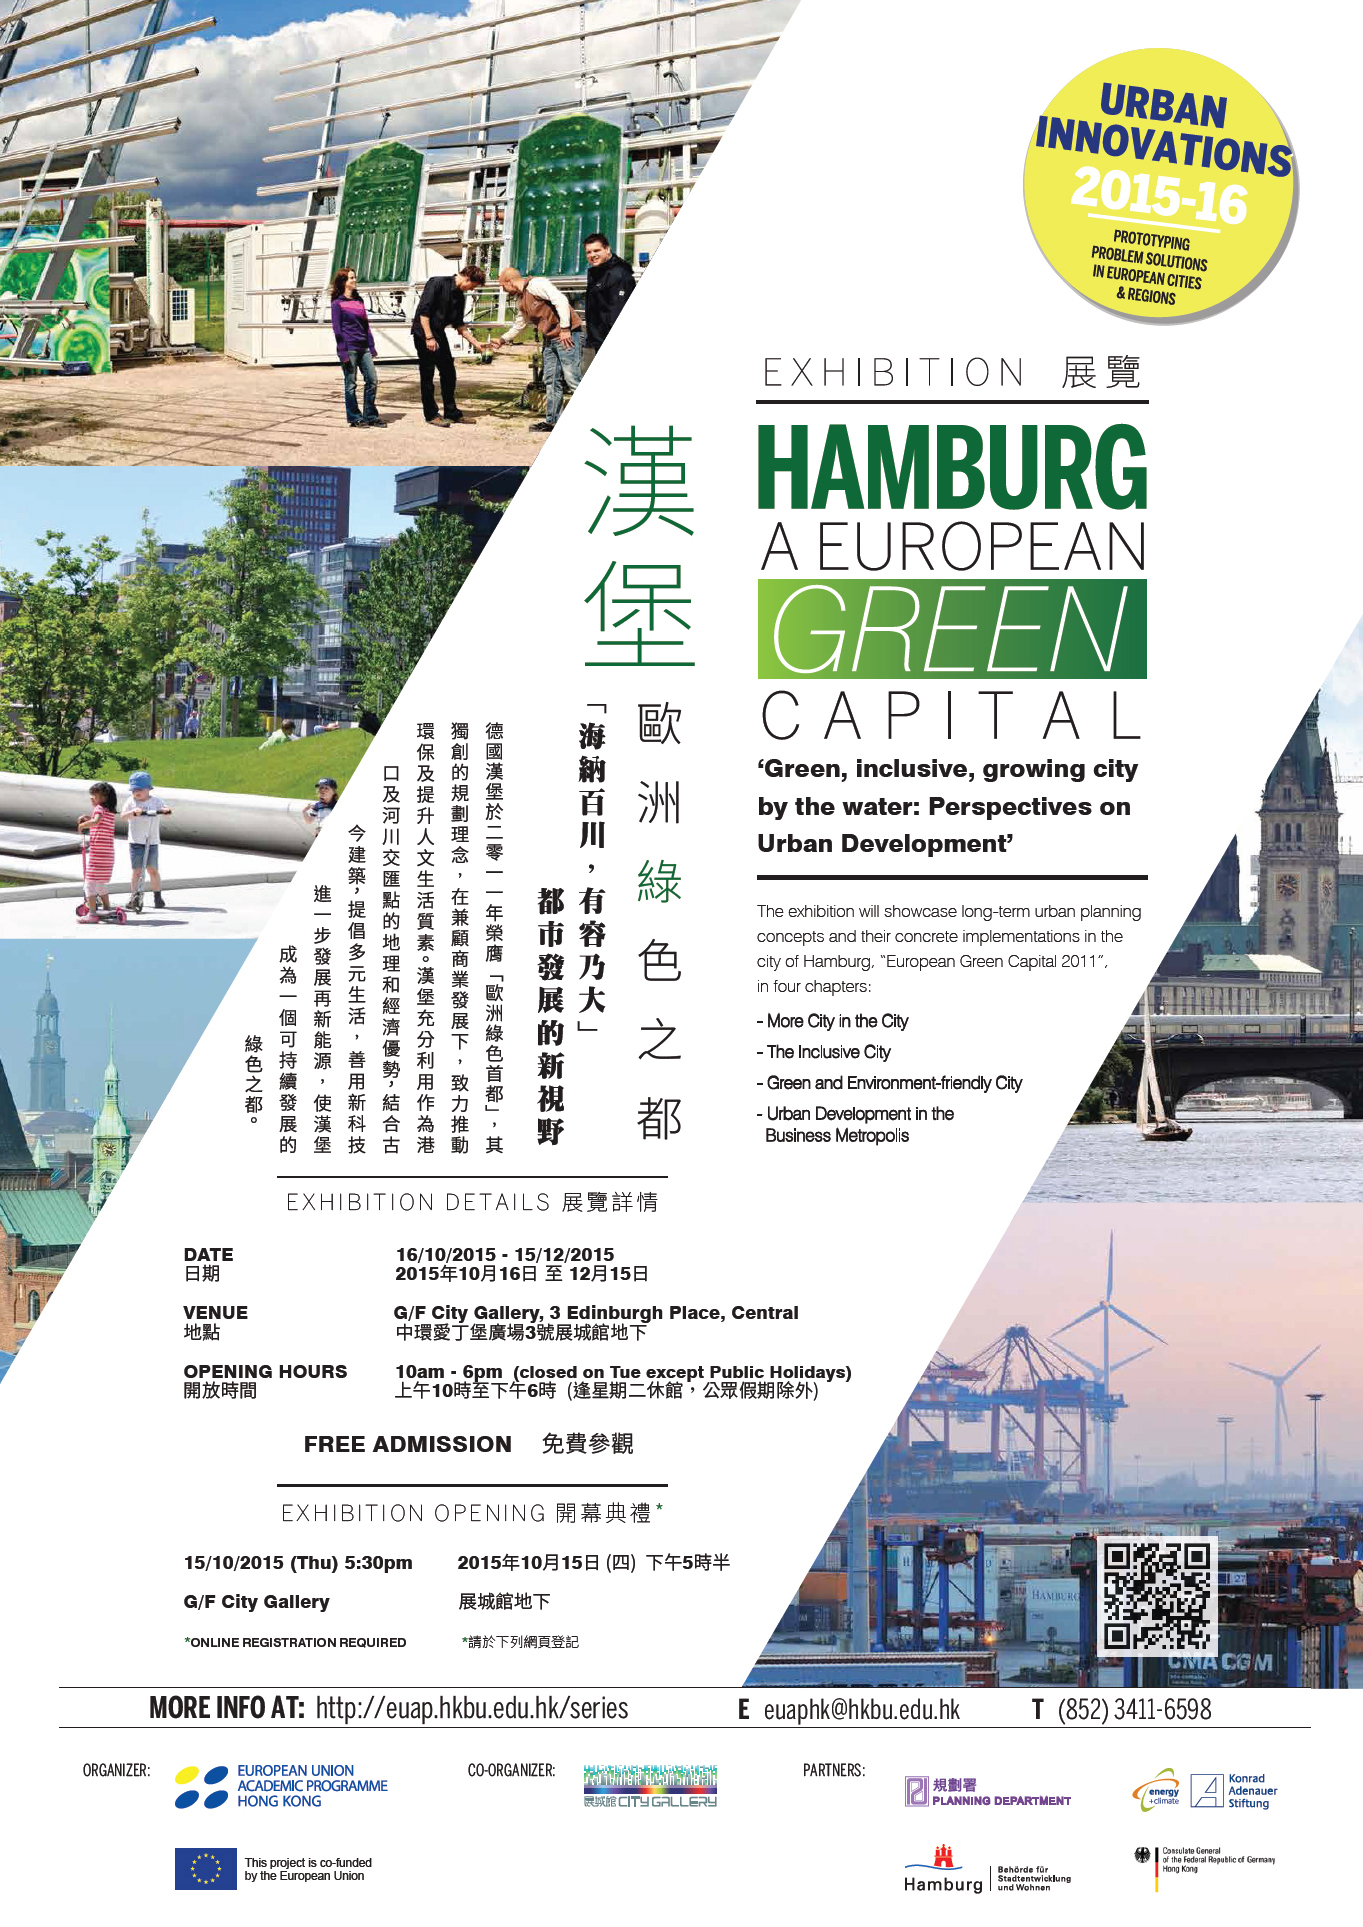 [Exhibition 展覽] Hamburg – A European Green Capital: 'Green, inclusive, growing city by the water: Perspectives on Urban Development' 漢堡-歐洲綠色之都